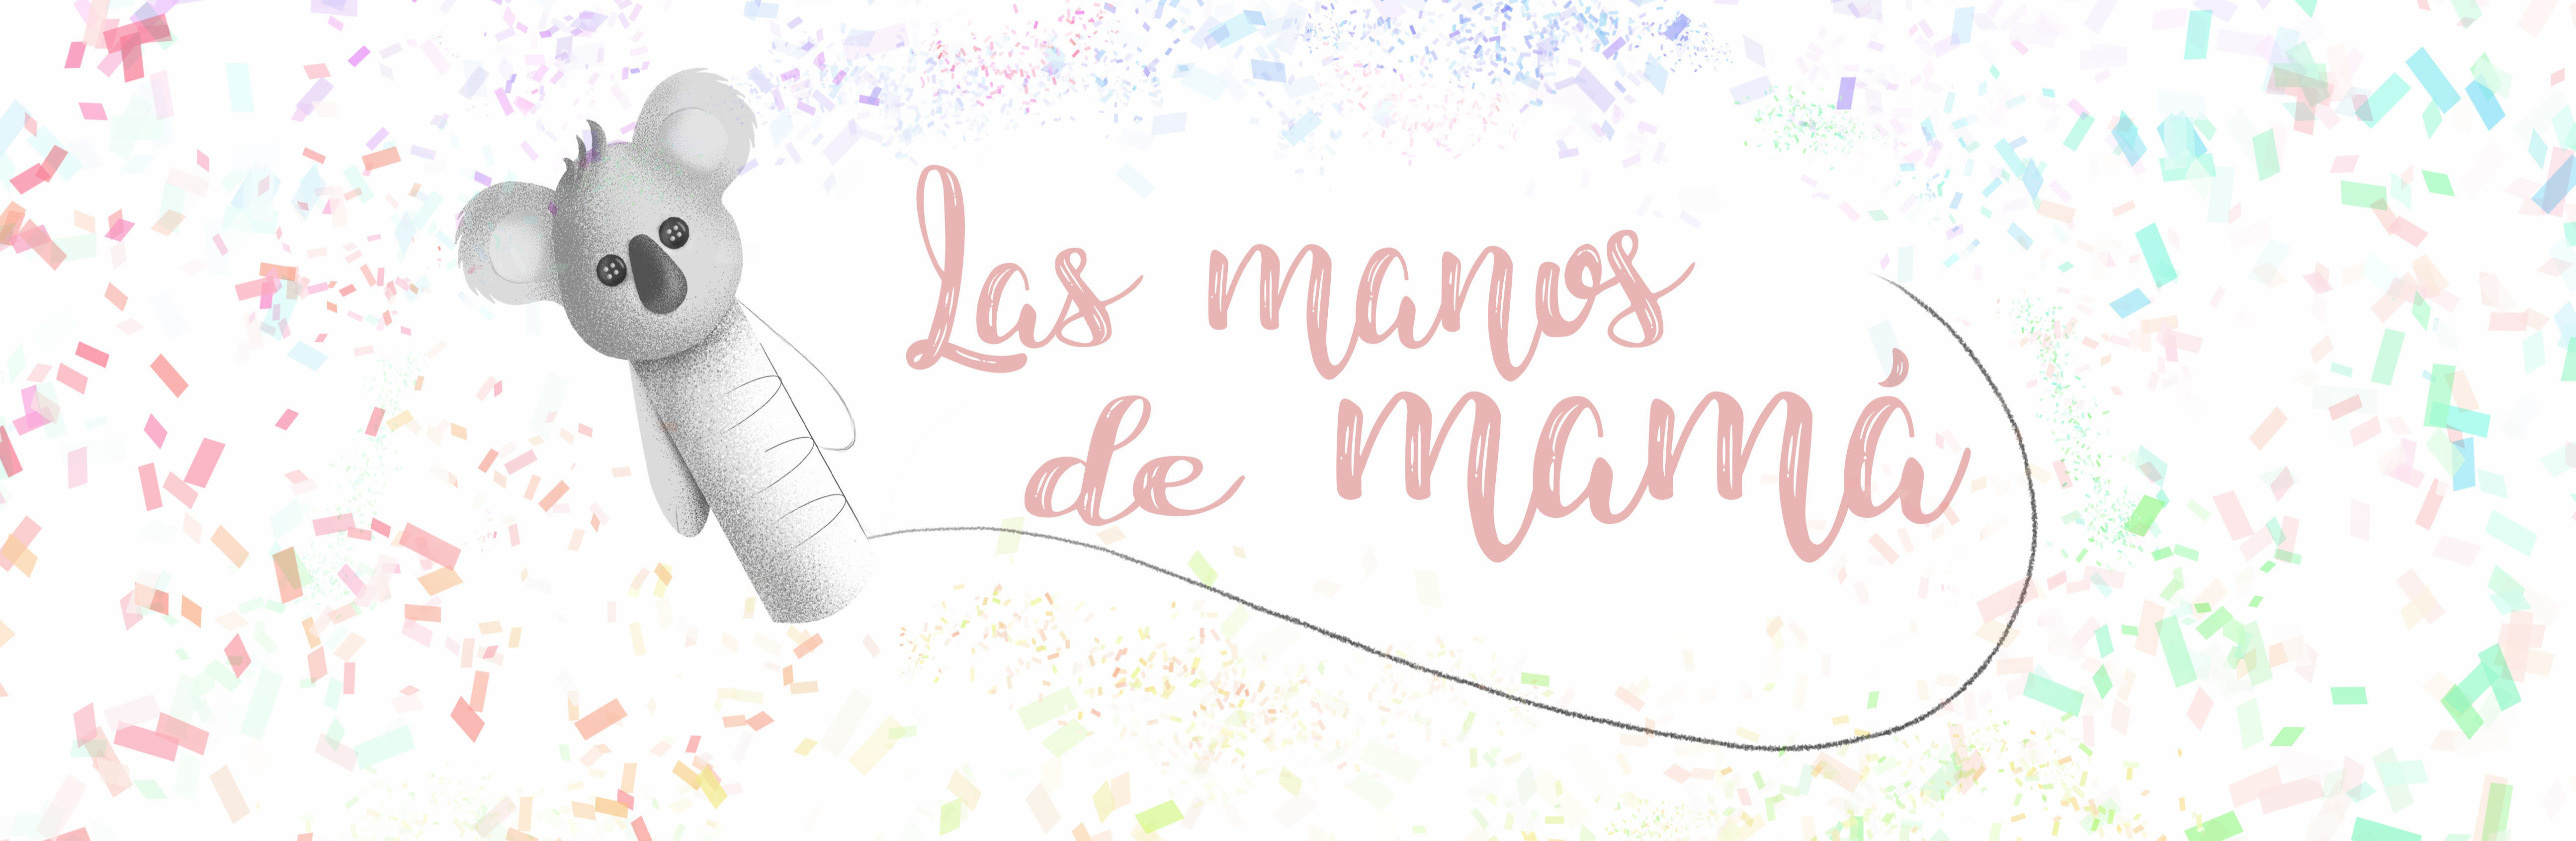 Las manos de mamá